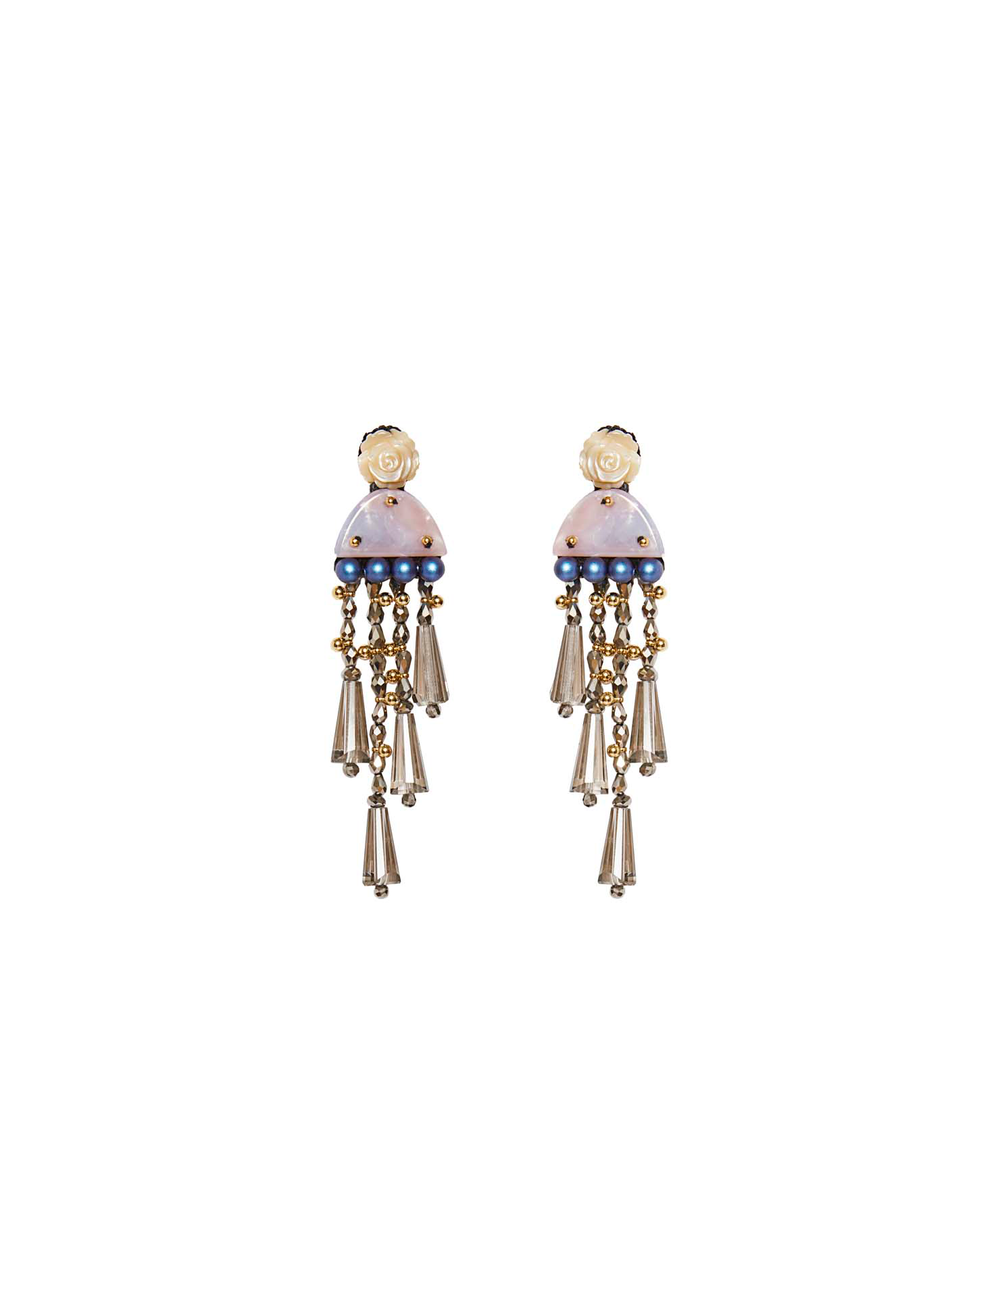 Lisboa Earrings